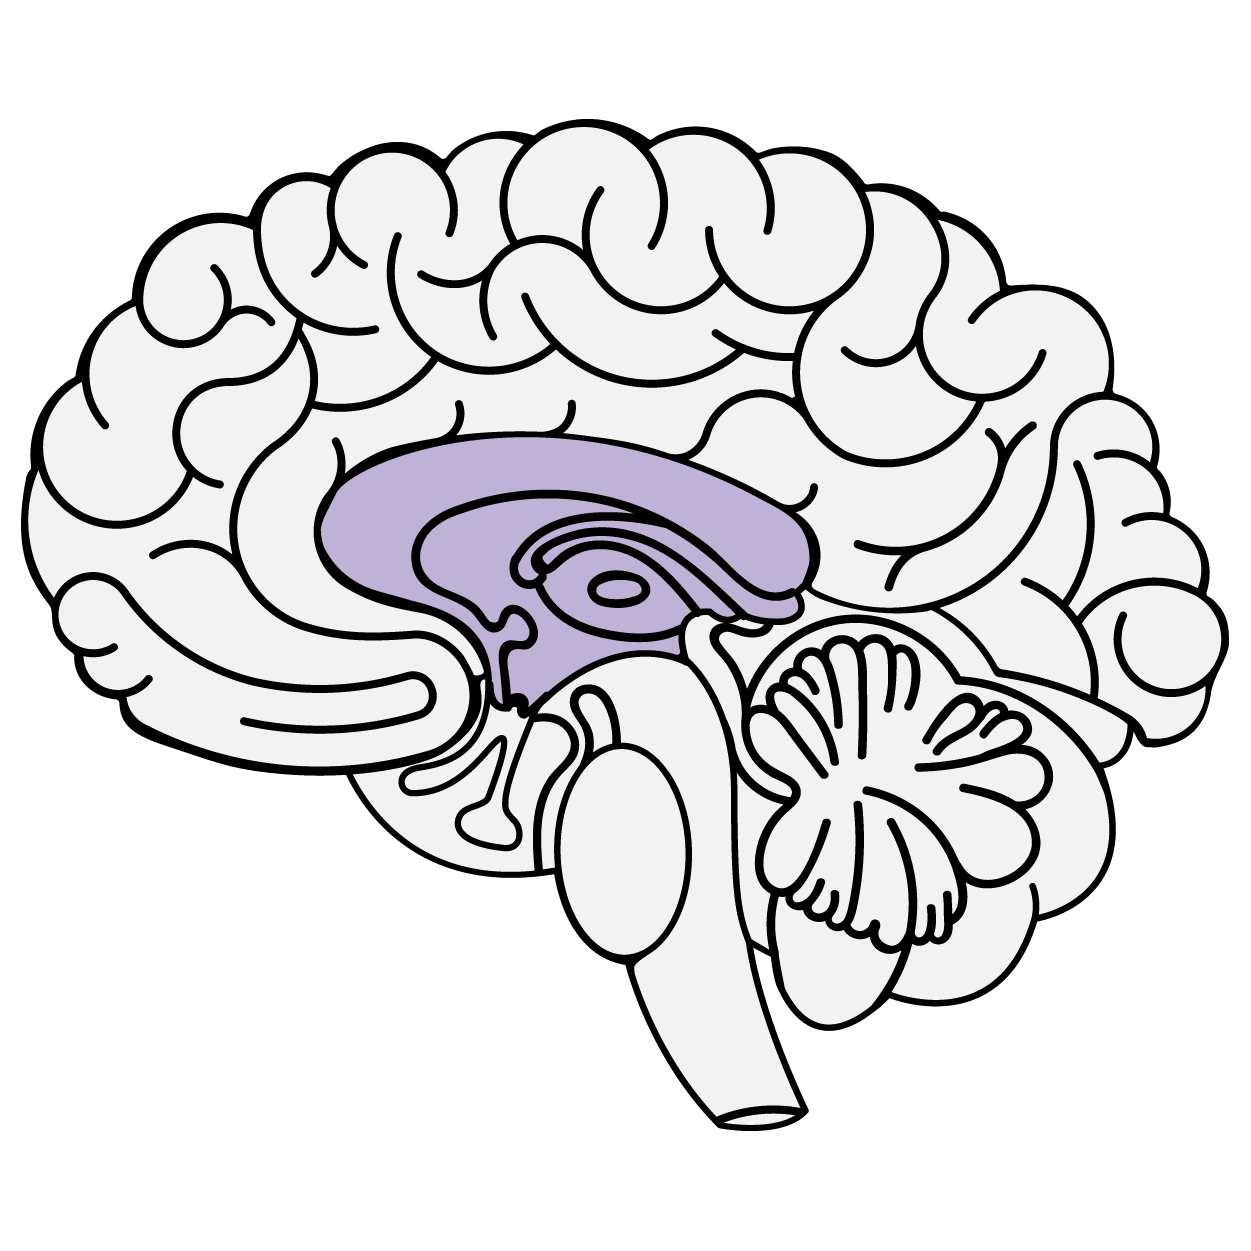 The Limbic System Diagram